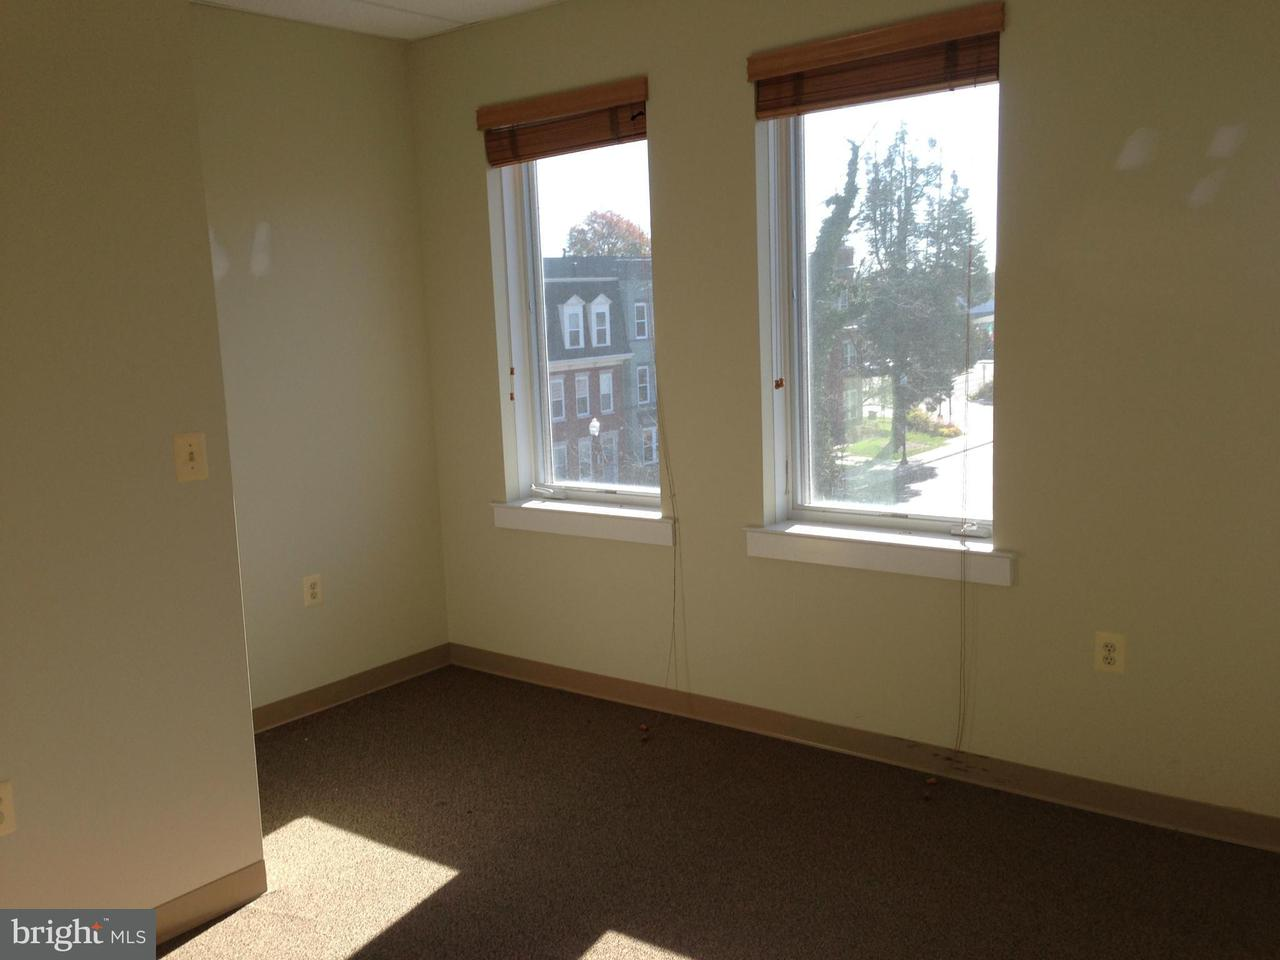 Additional photo for property listing at 9401 Centreville Road 9401 Centreville Road Manassas, Virginia 20110 United States